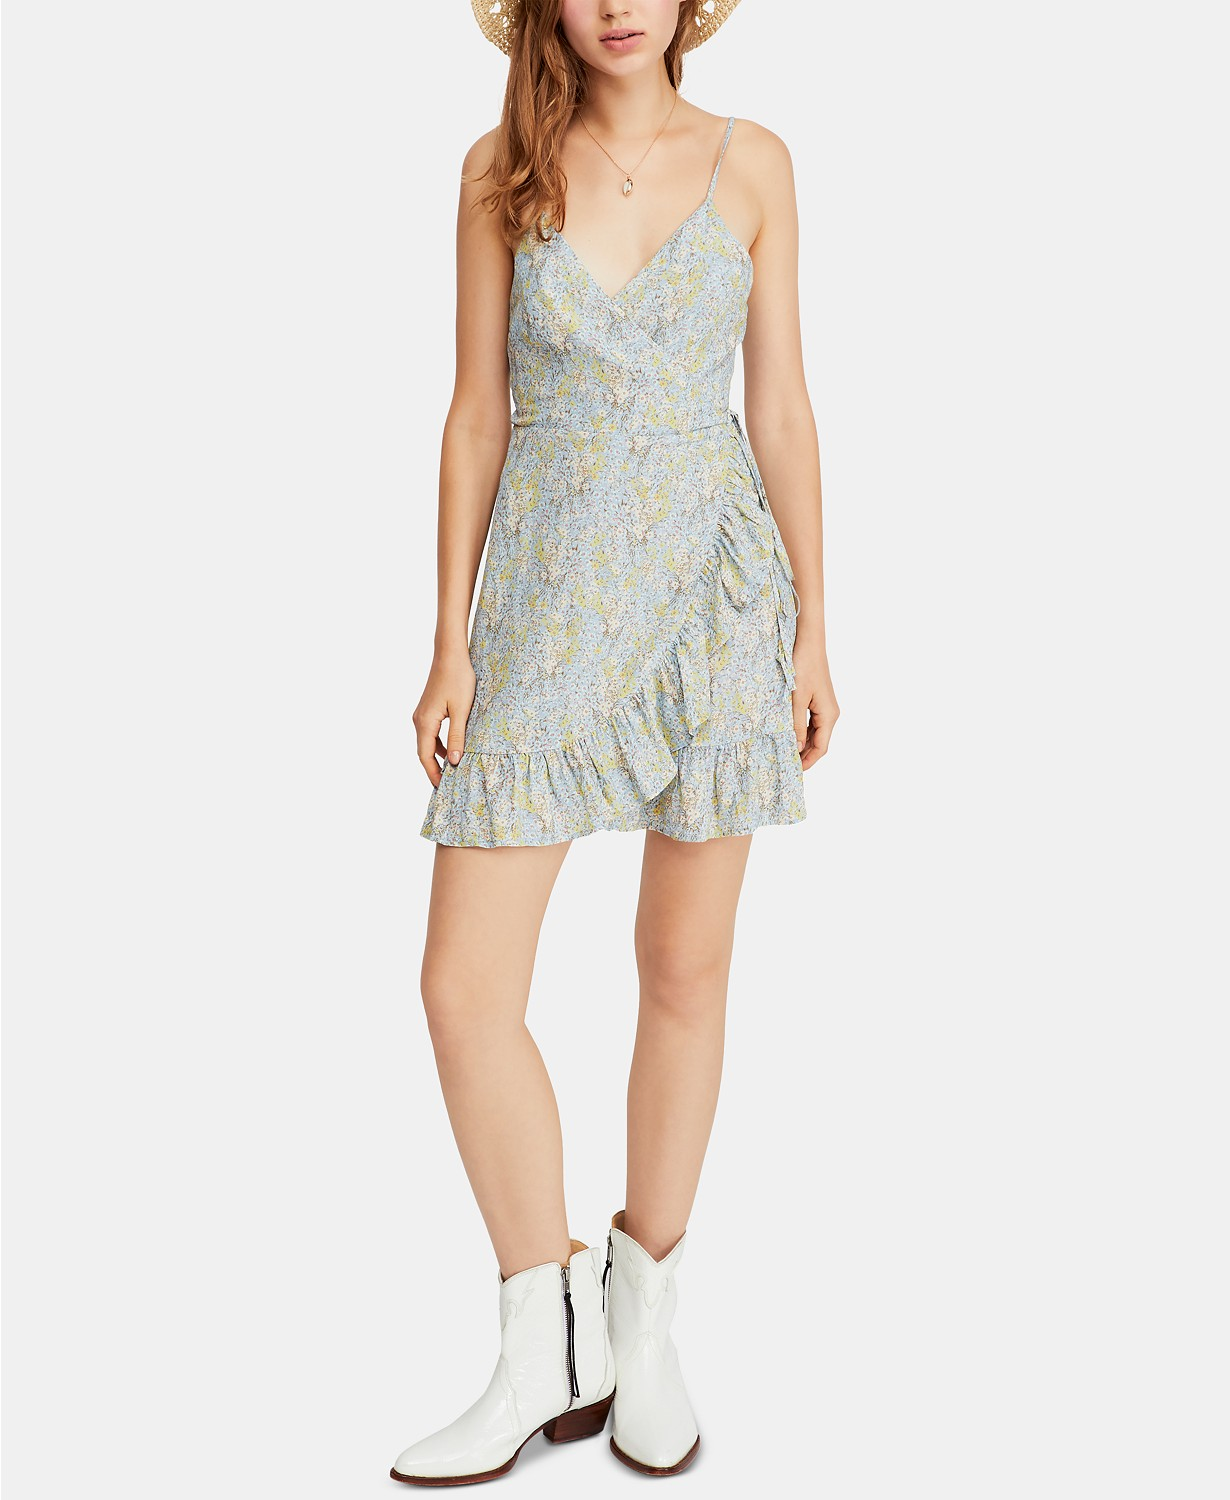 Cutest Dresses - Free People All My Love Printed Wrap Dress